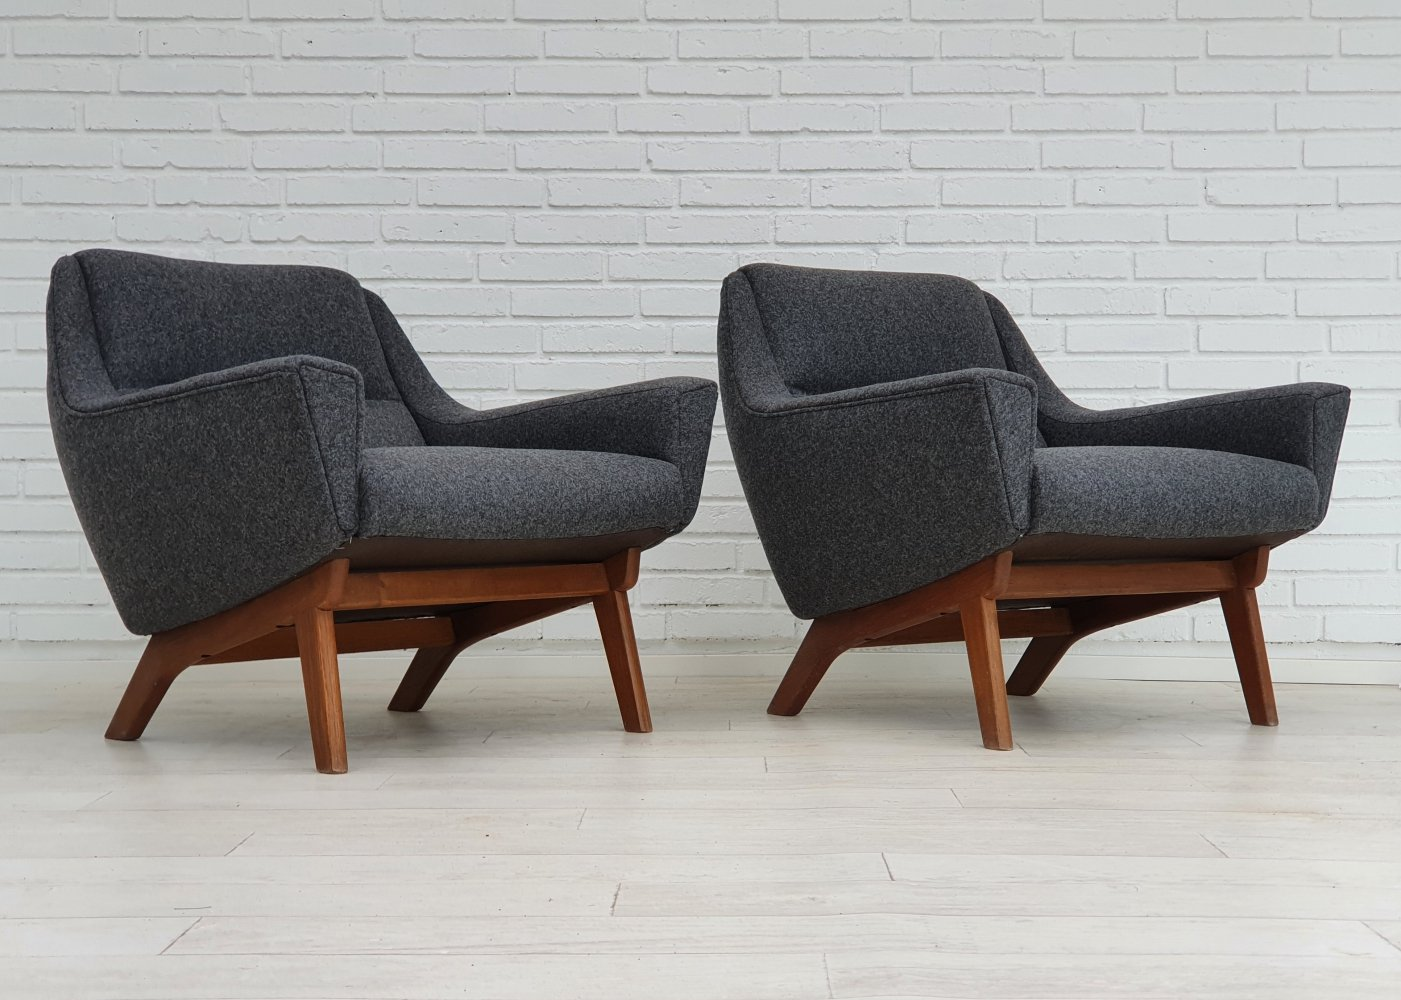 Pair of Original Danish armchairs, 1960s